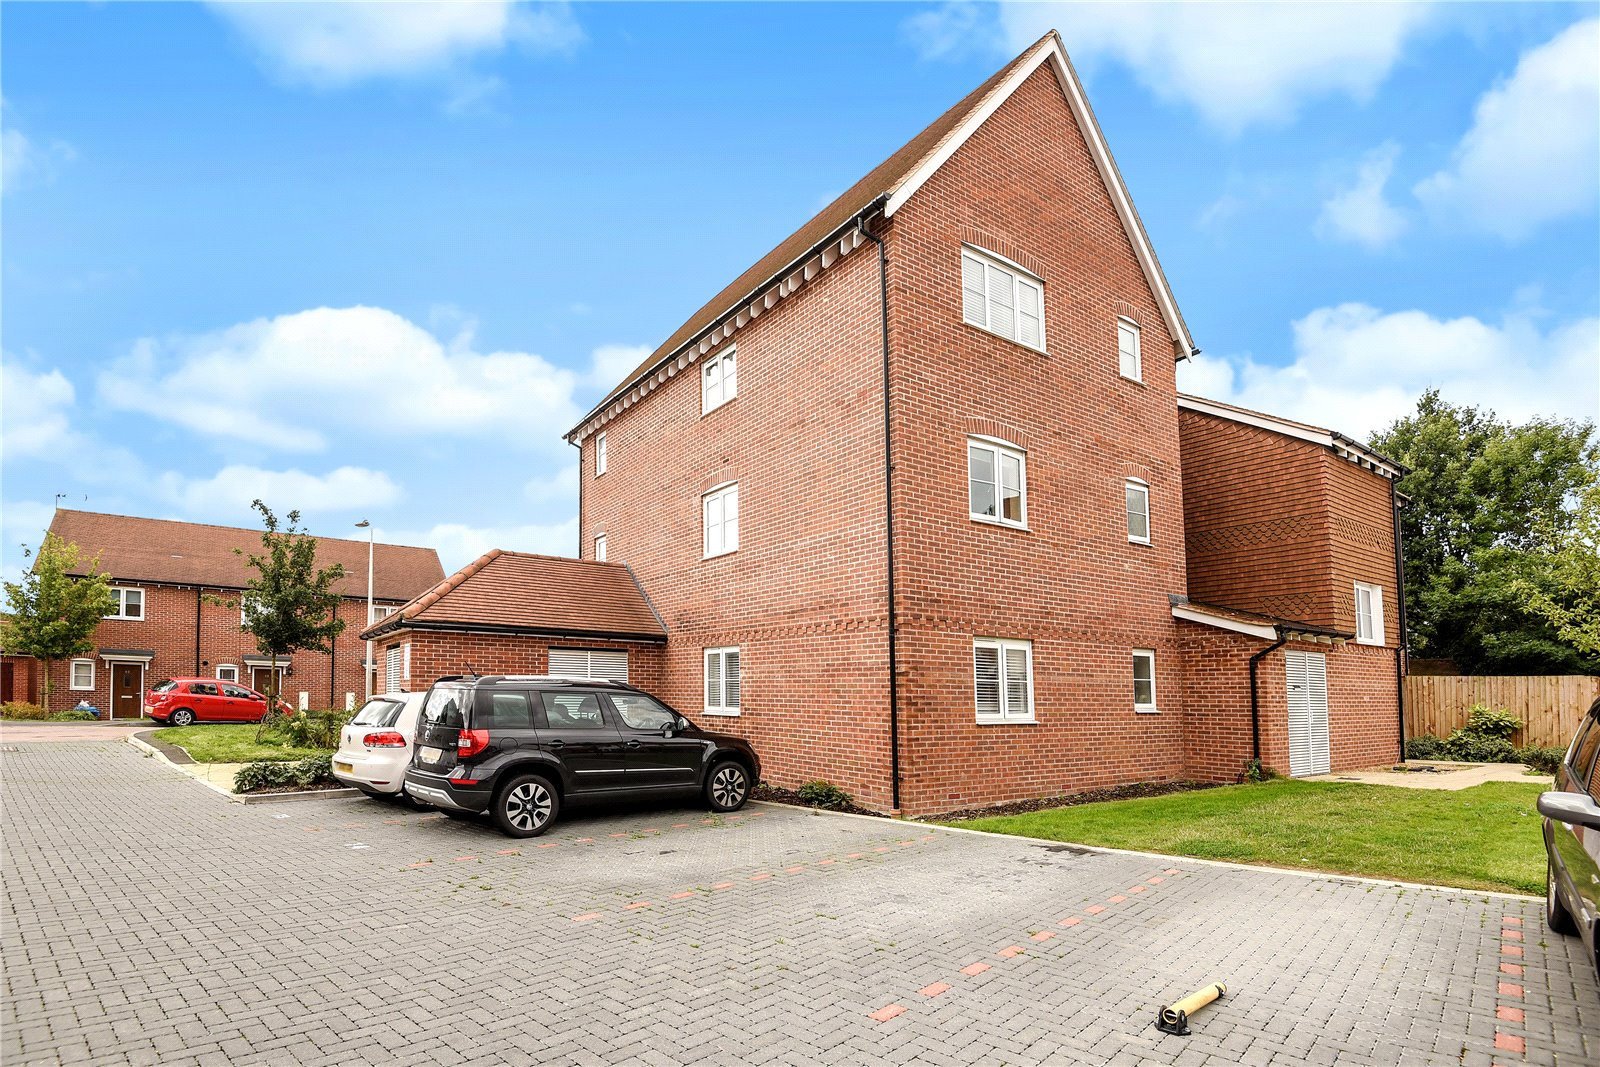 2 Bedrooms Apartment Flat for sale in Outfield Crescent, Wokingham, Berkshire, RG40